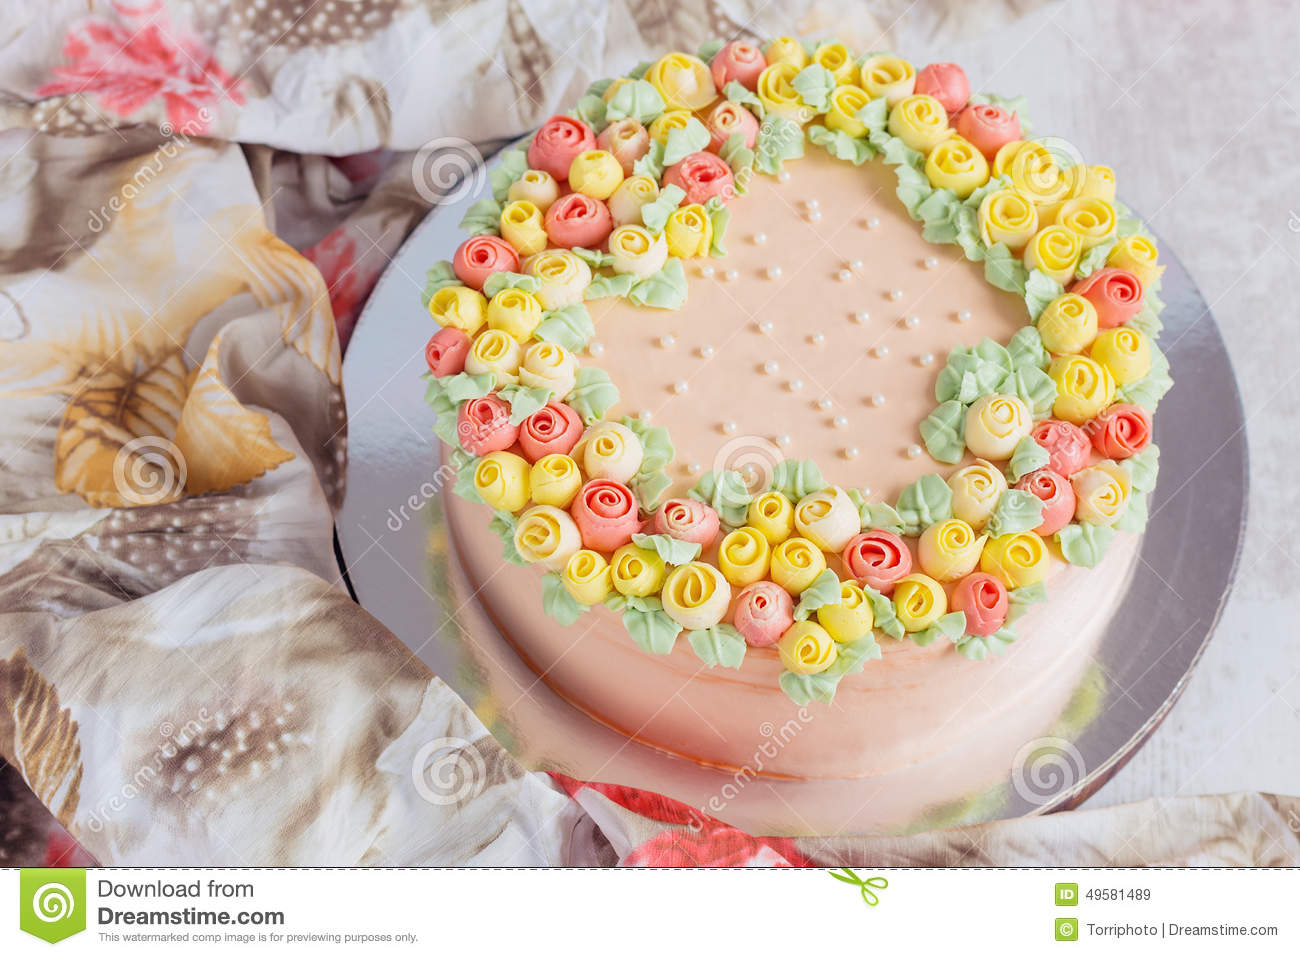 Different Homemade Cake Decorating Ideas : Cream Cake Decorated With Small Yellow And Pink Roses ...